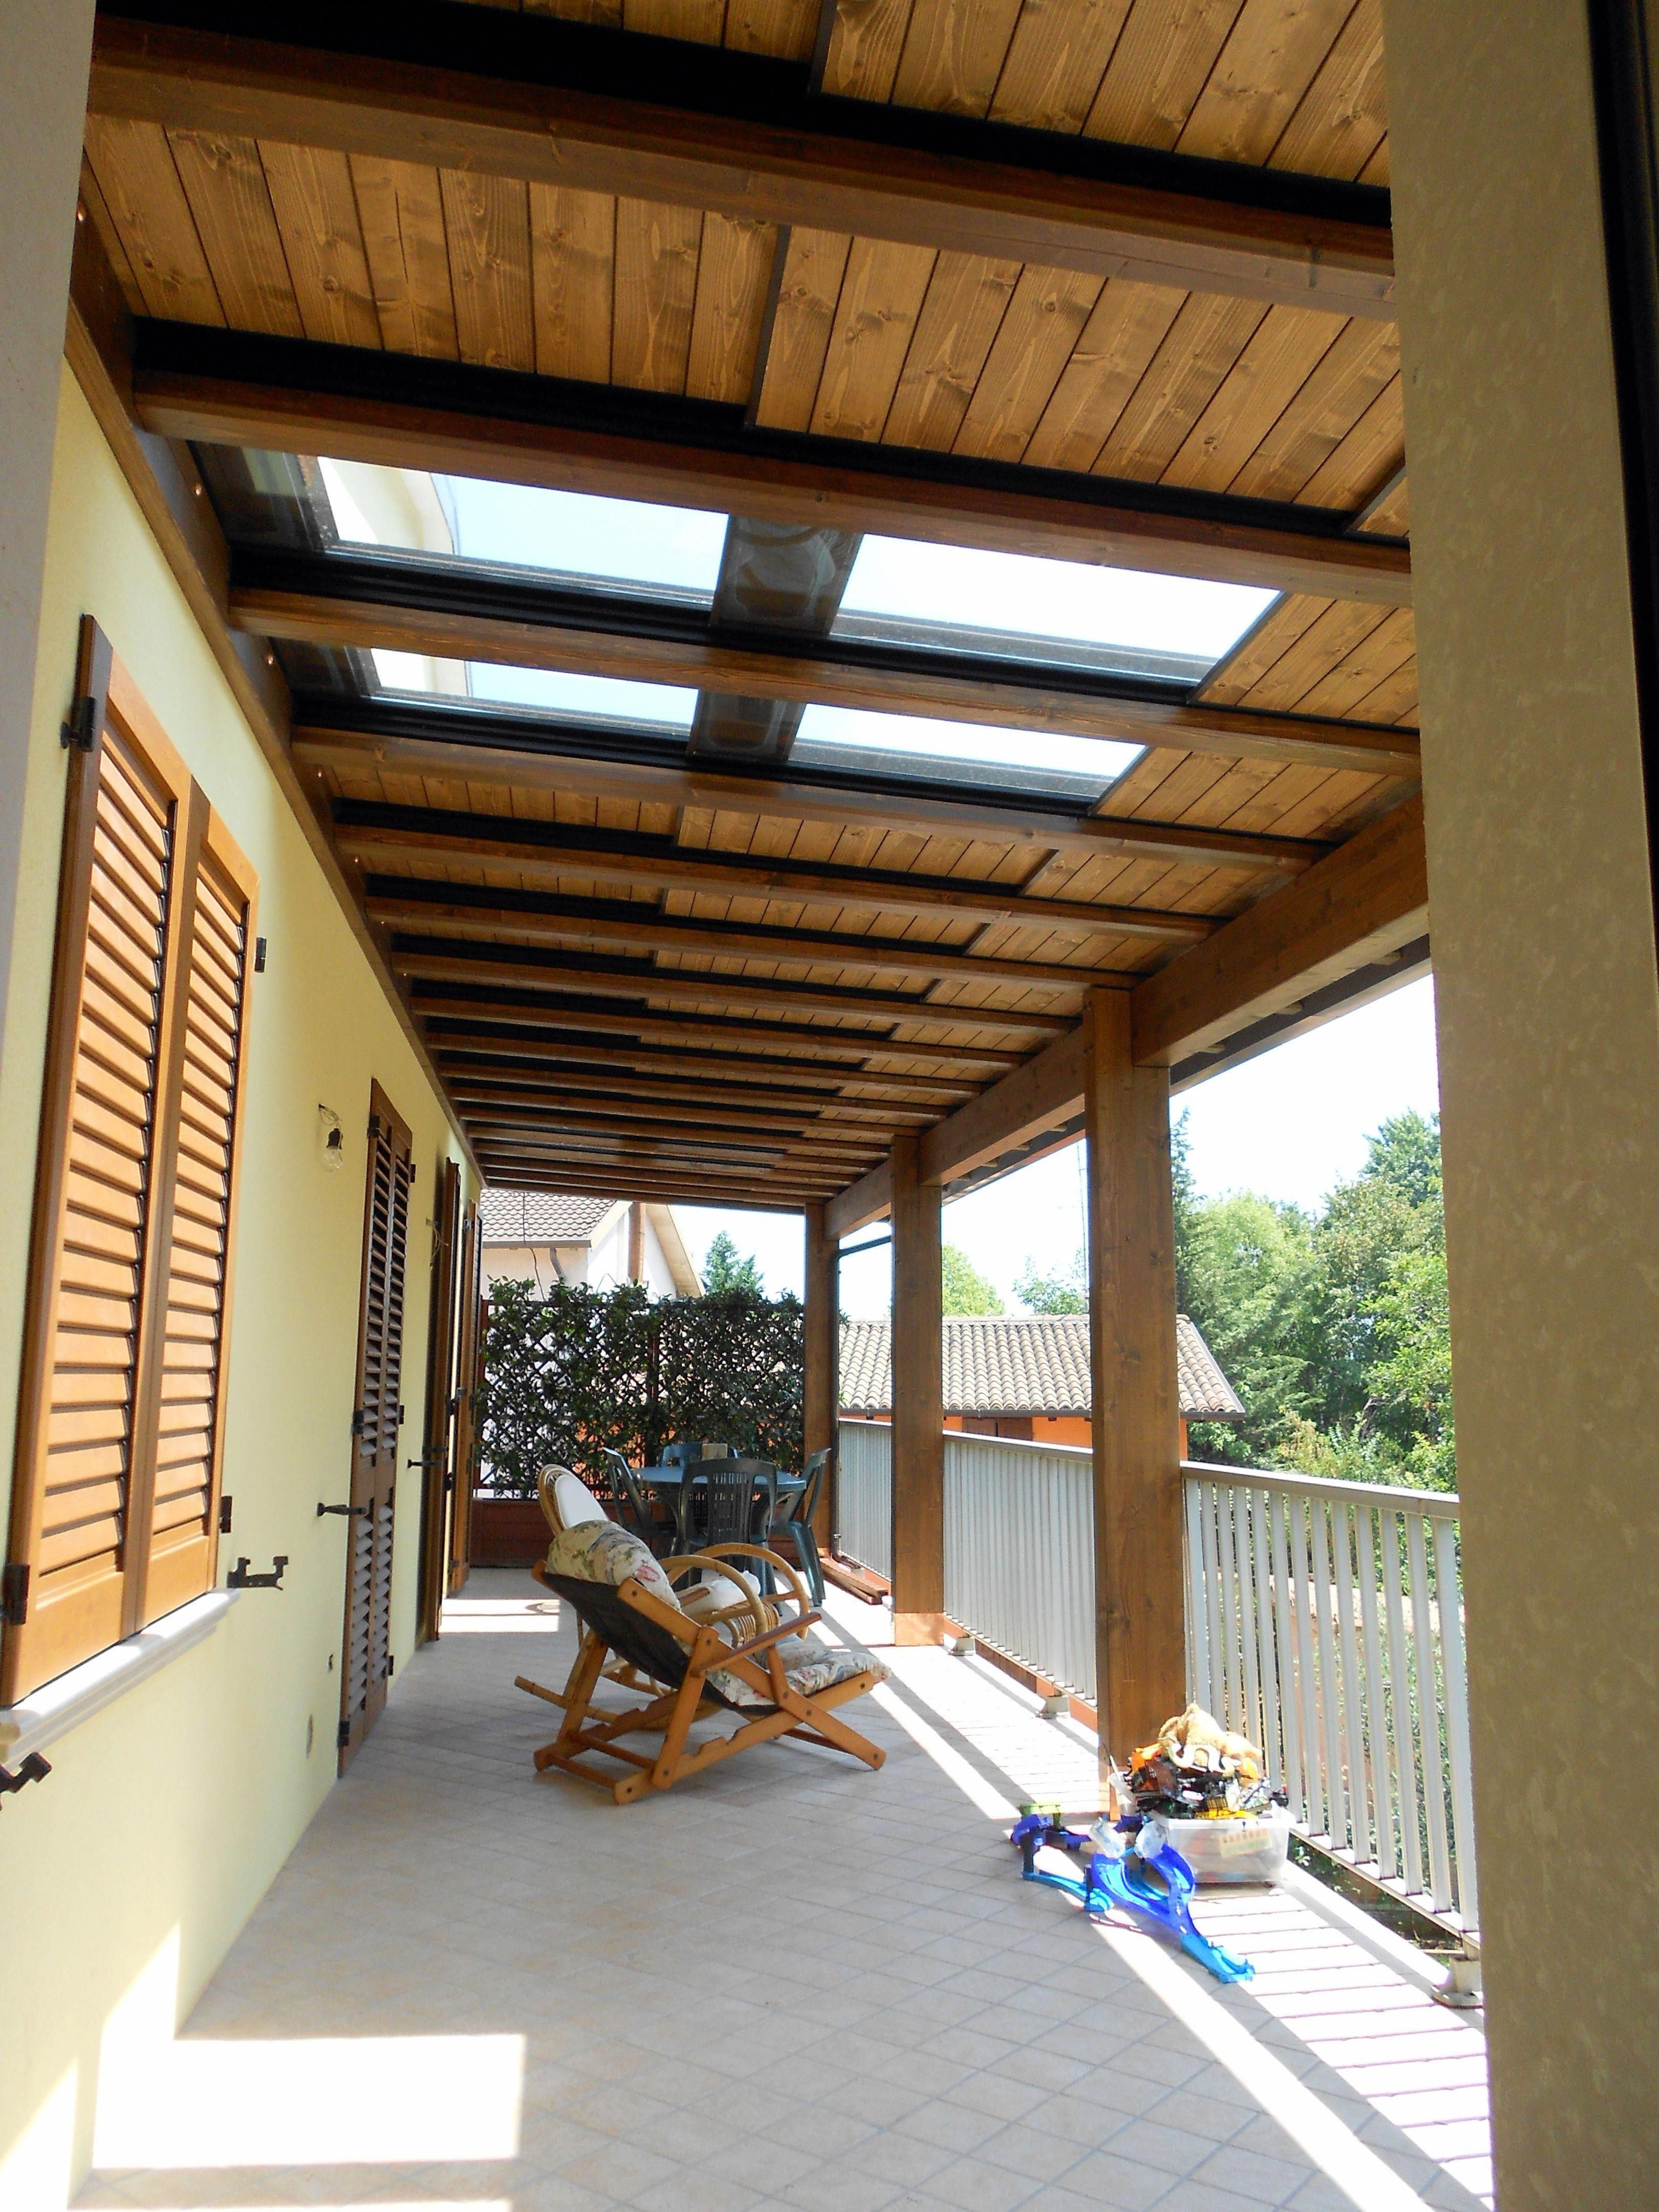 pergola clearance sale pergolaraftertails on wow awesome backyard patio designs ideas for copy id=63557